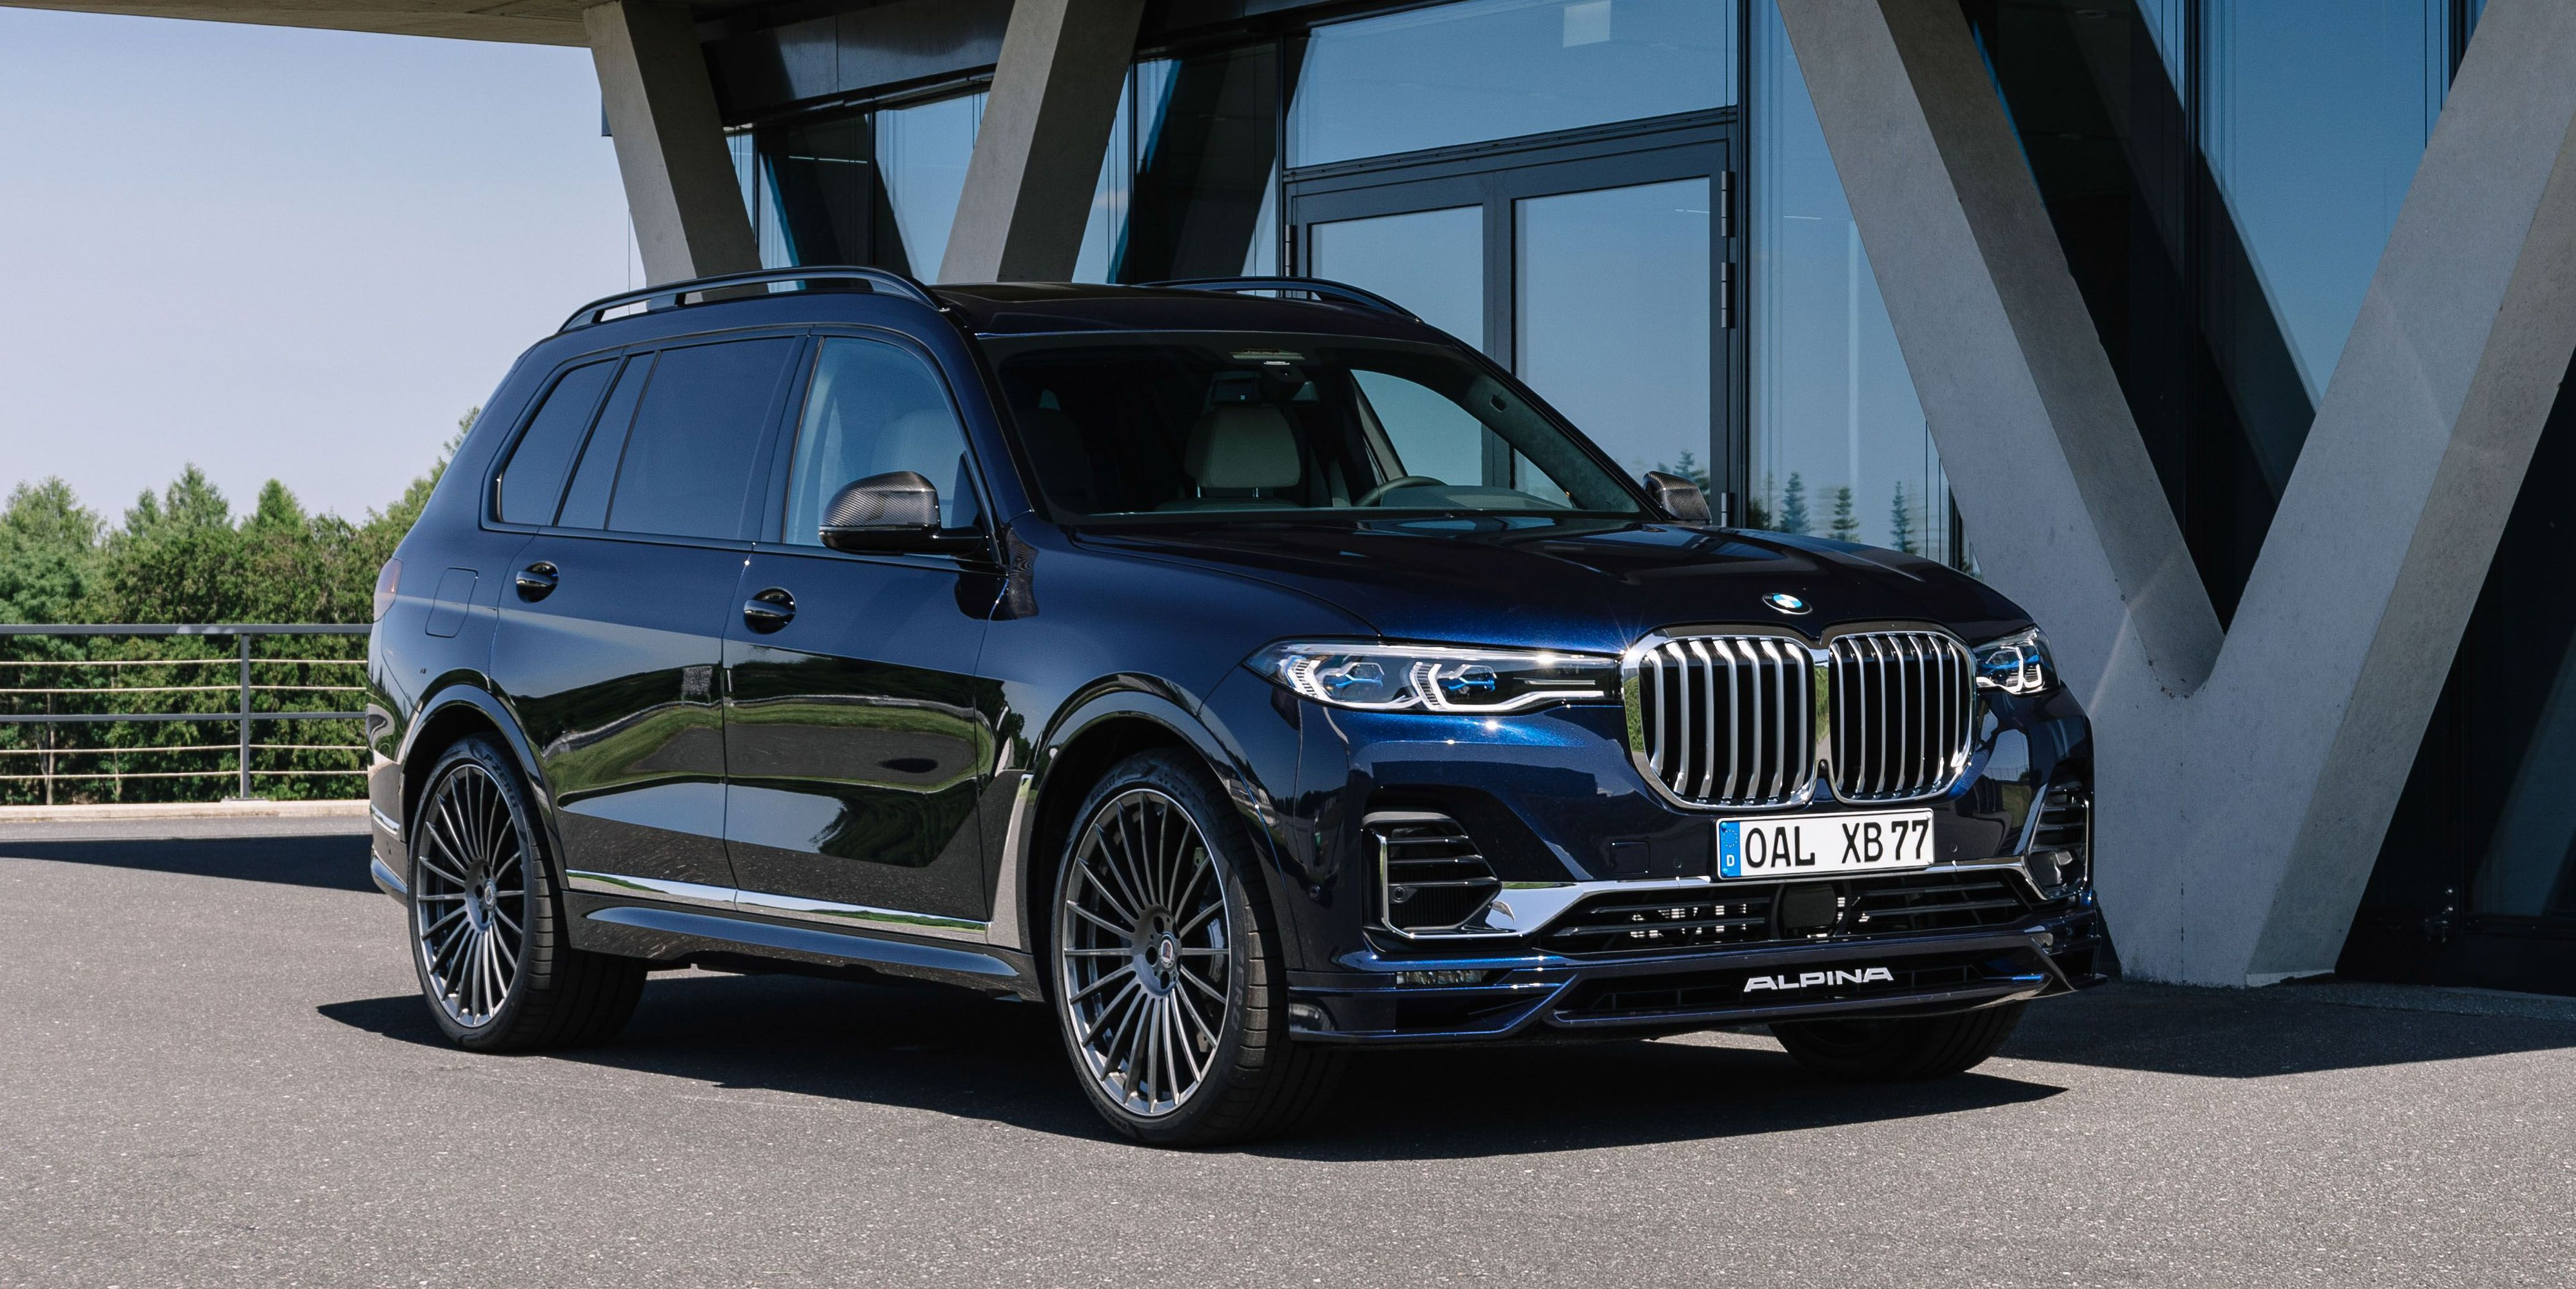 2022 BMW X7 Review, Pricing, and Specs - newsbinding